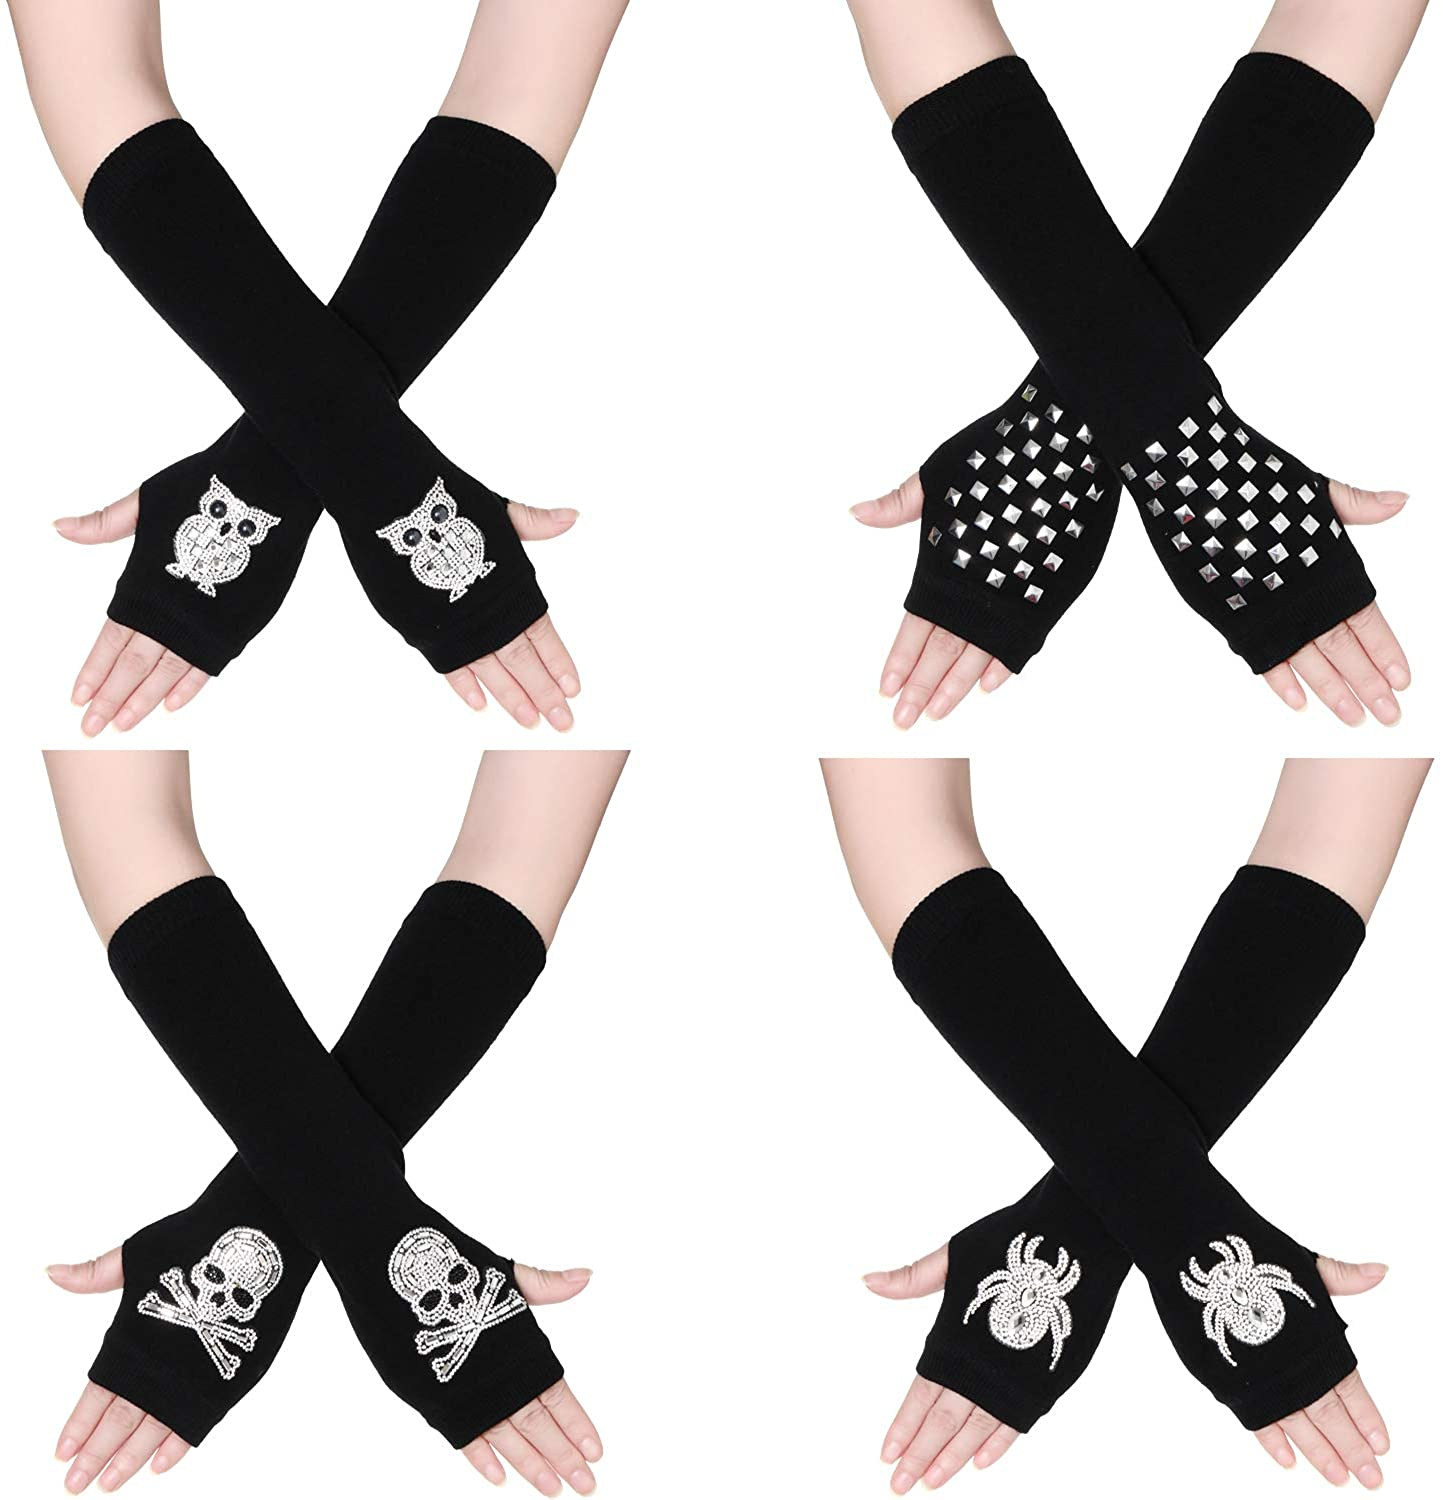 4 Pairs Women Knit Arm Warmers Punk Fingerless Gloves with Thumb Hole for Party Daily Wear